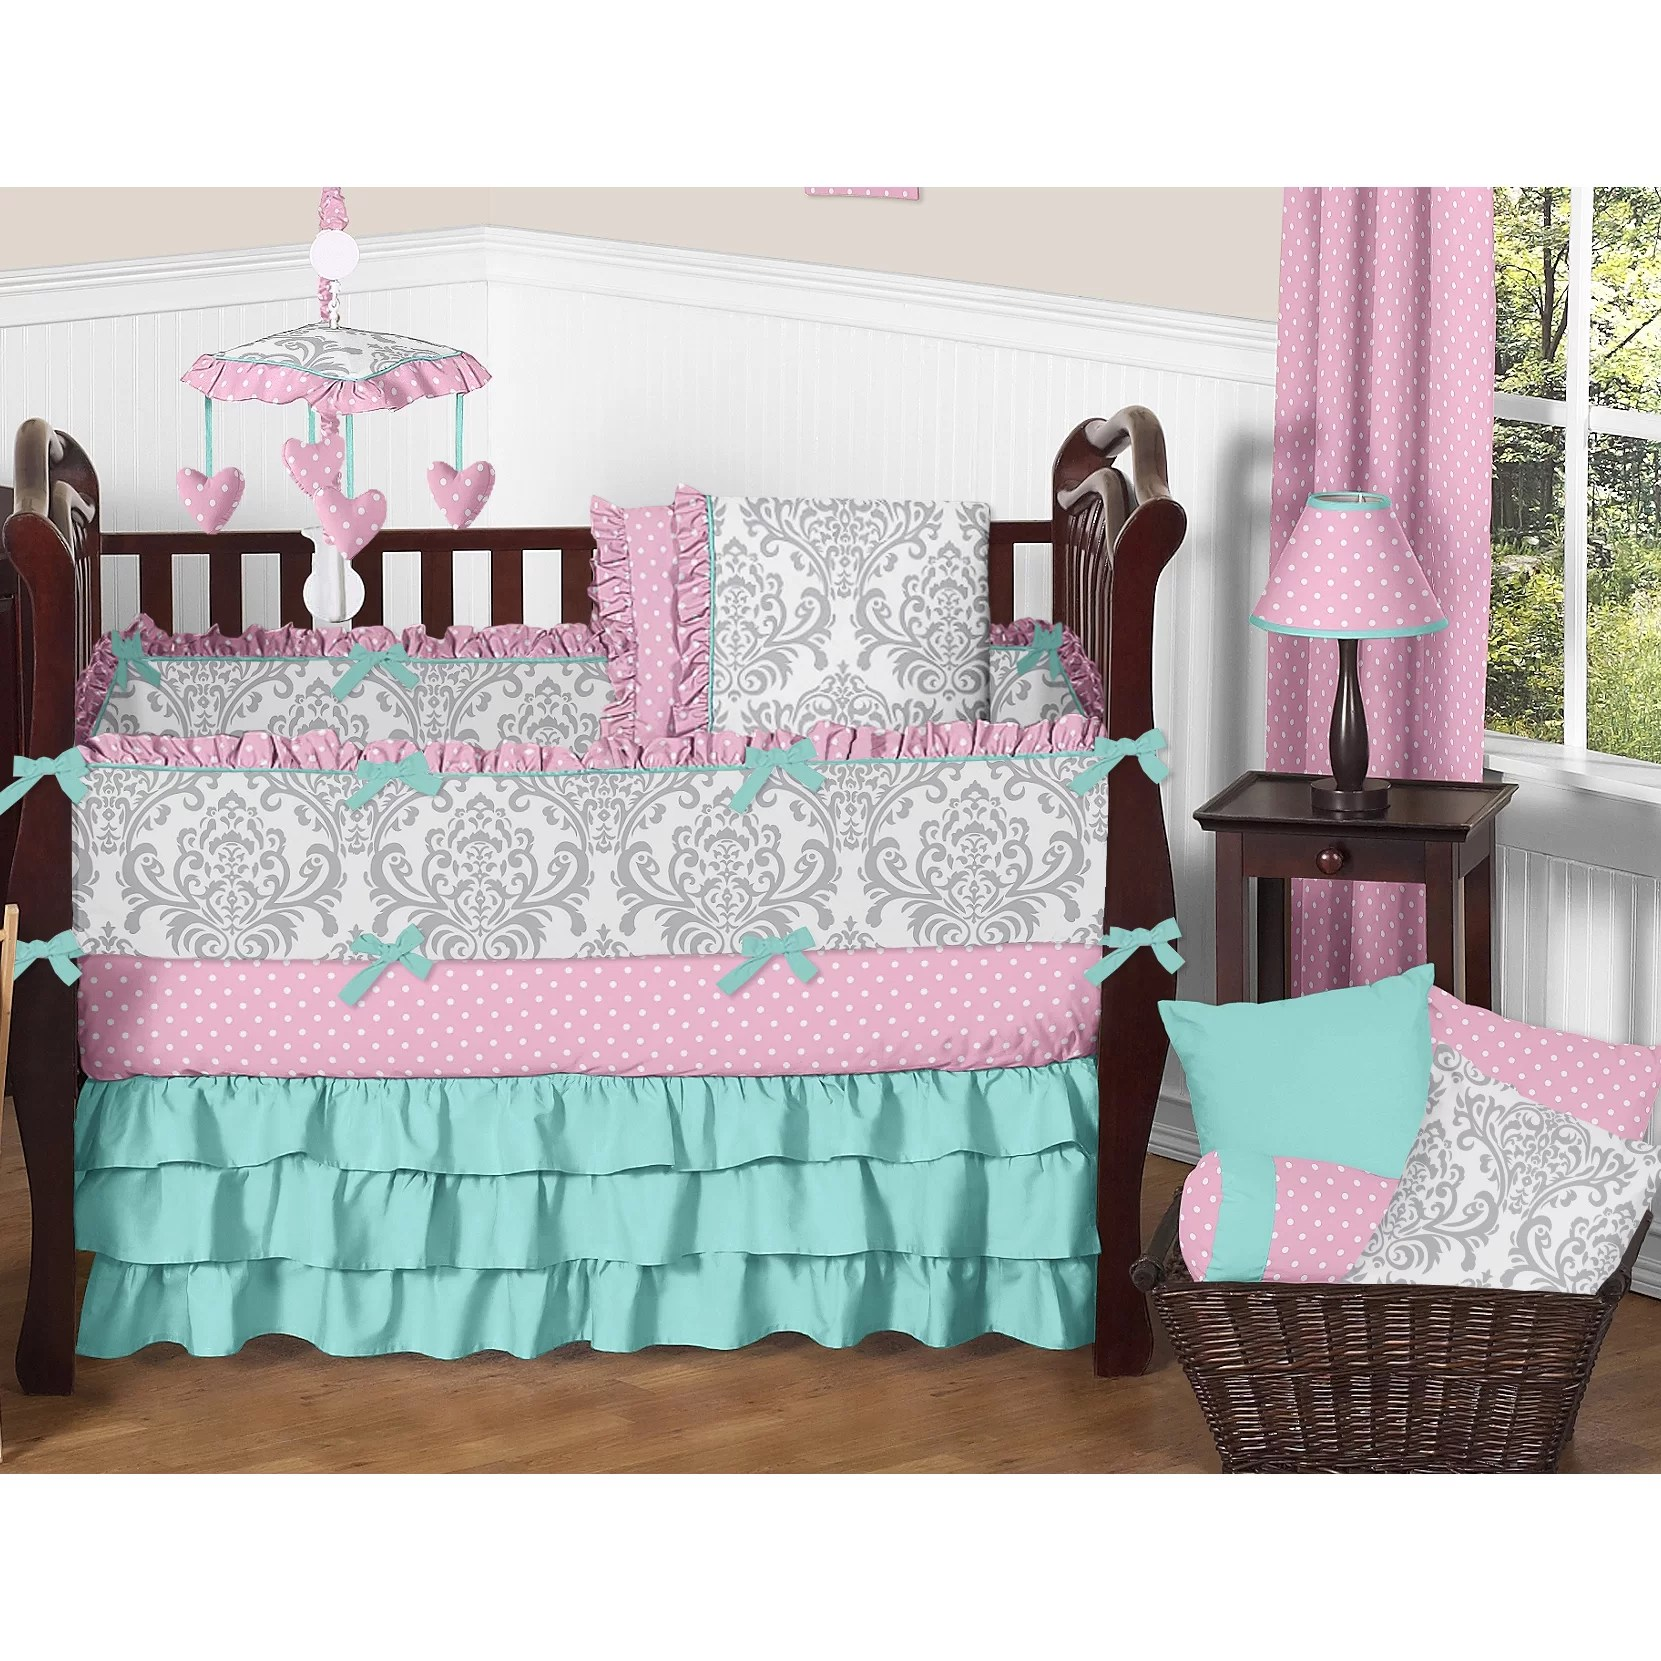 Sweet Jojo Designs Skylar 9 Piece Crib Bedding Set